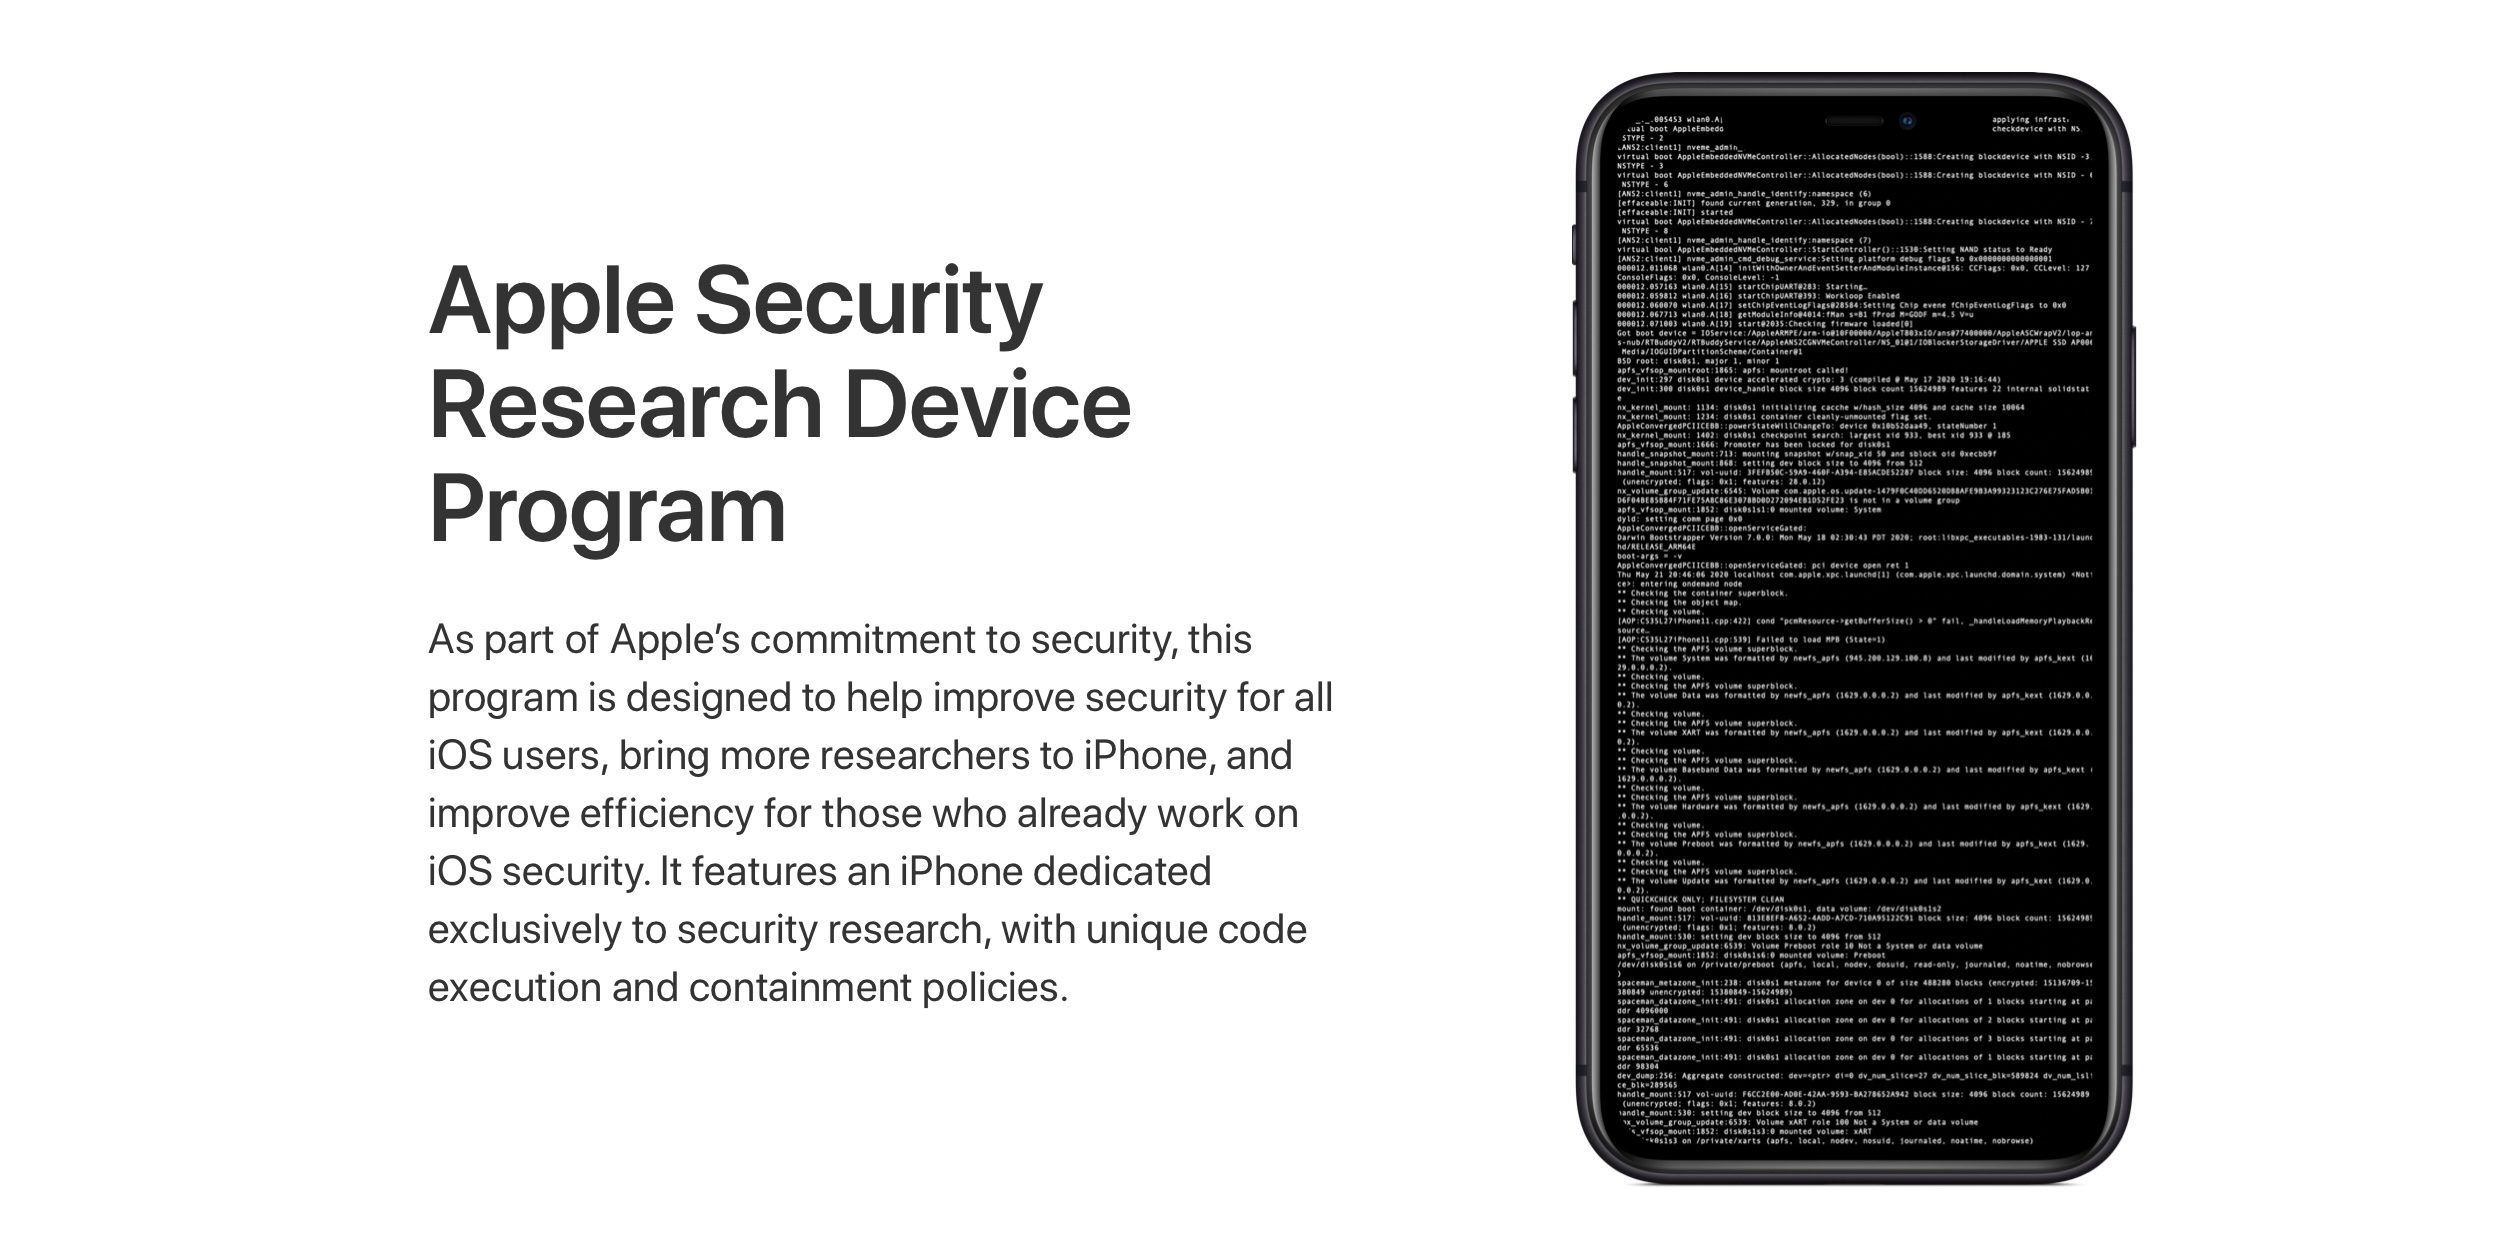 apples-new-security-program-gives-special-iphone-hardware-with-restrictions-attached